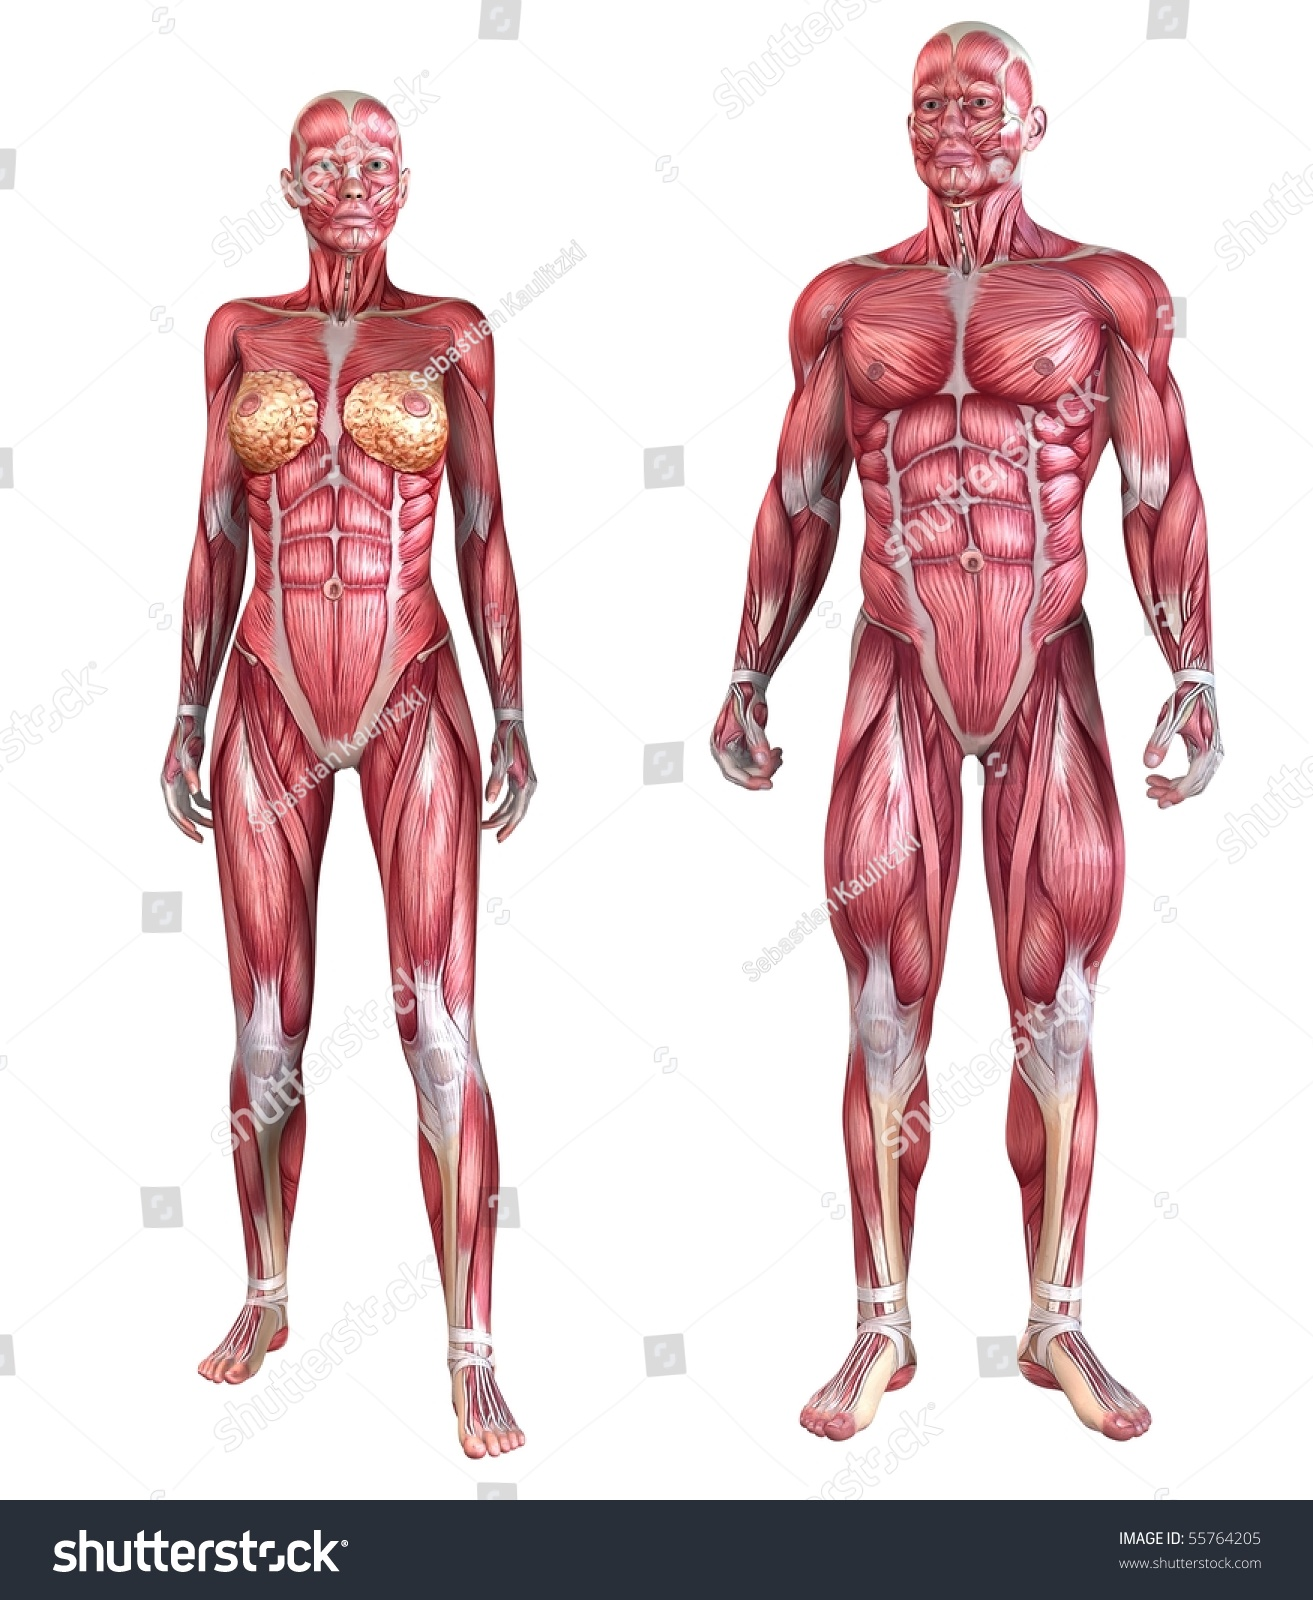 human muscle system stock illustration 55764205 - shutterstock, Muscles